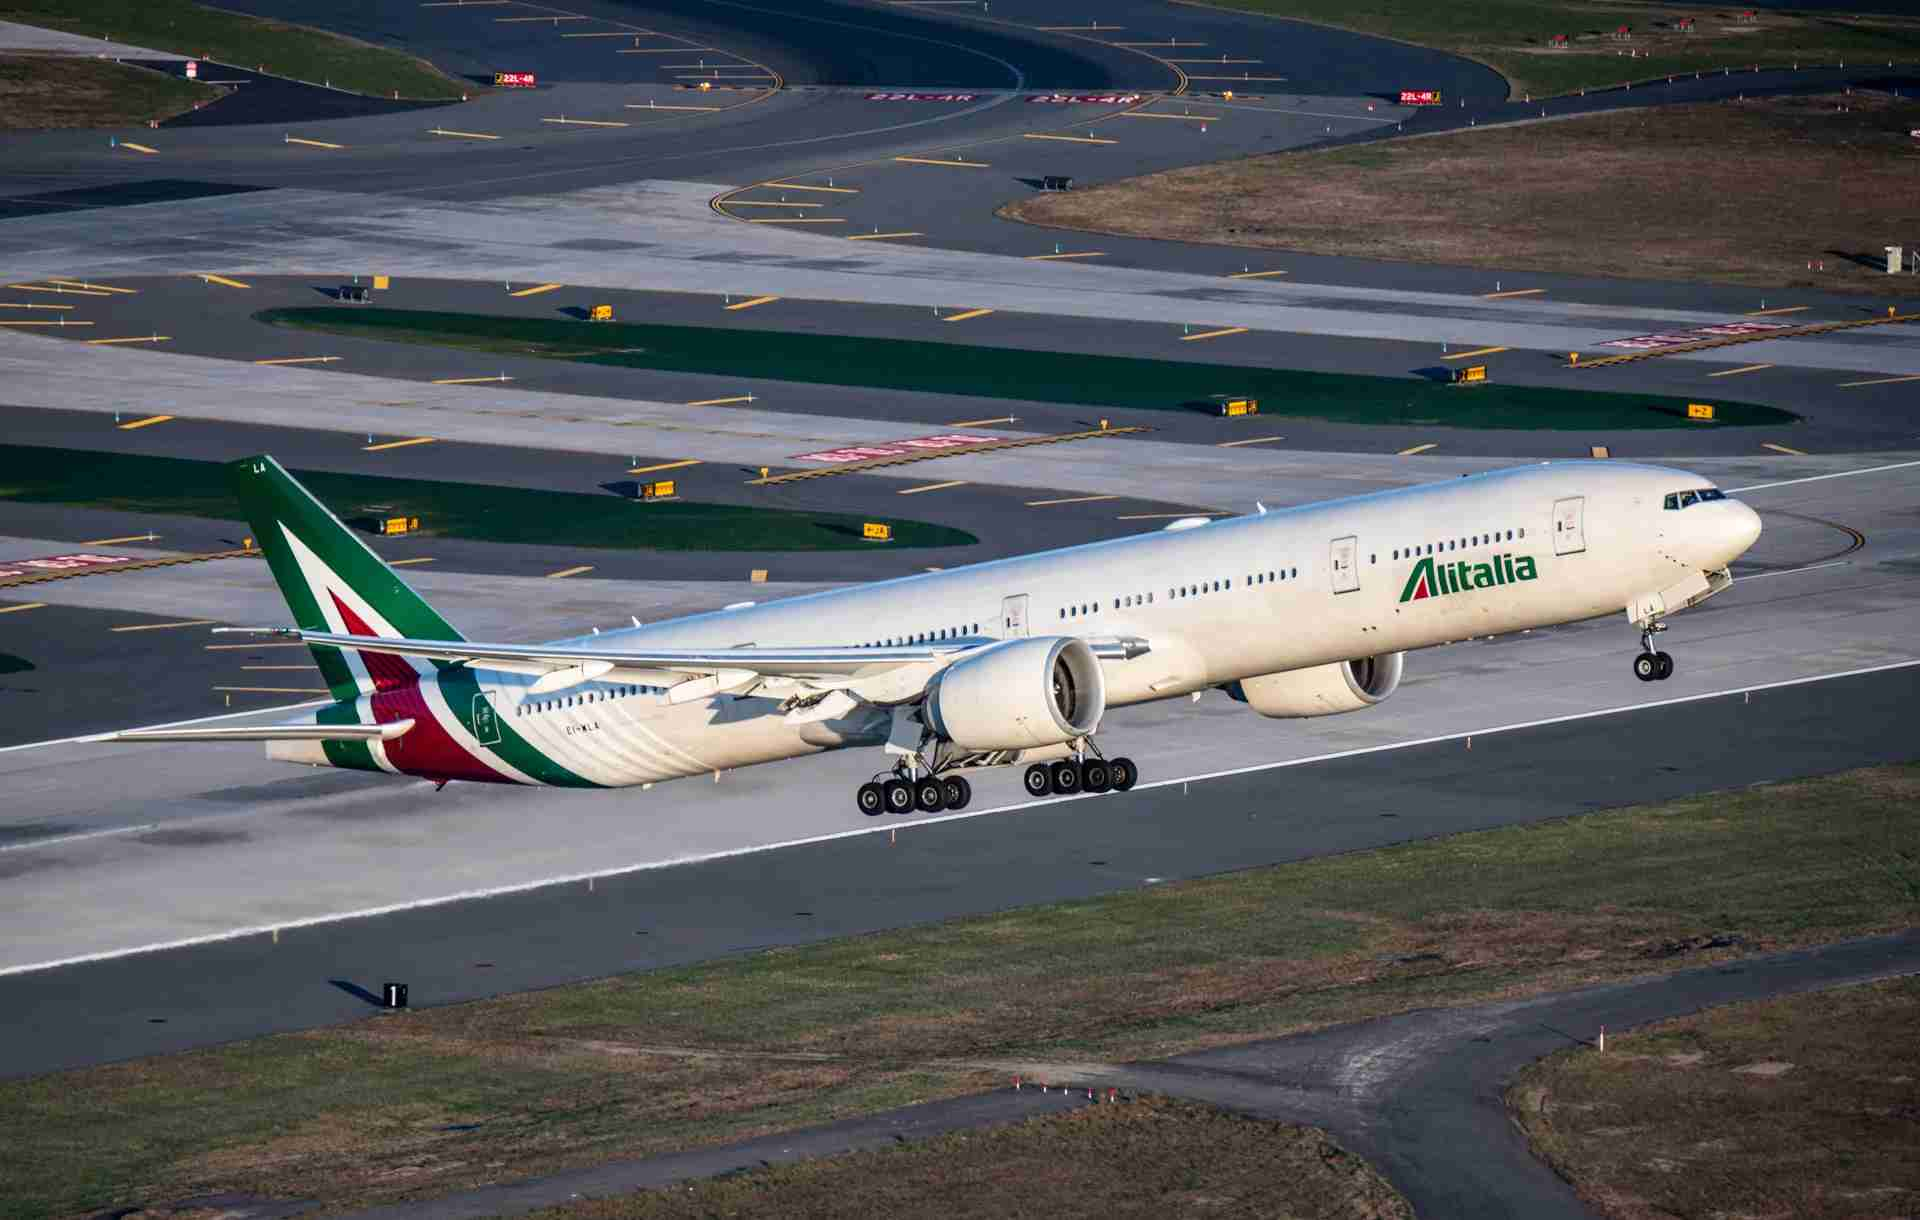 An Alitalia Boeing 777 is seen at New York JFK. (Photo by Ryan Patterson/The Points Guy)